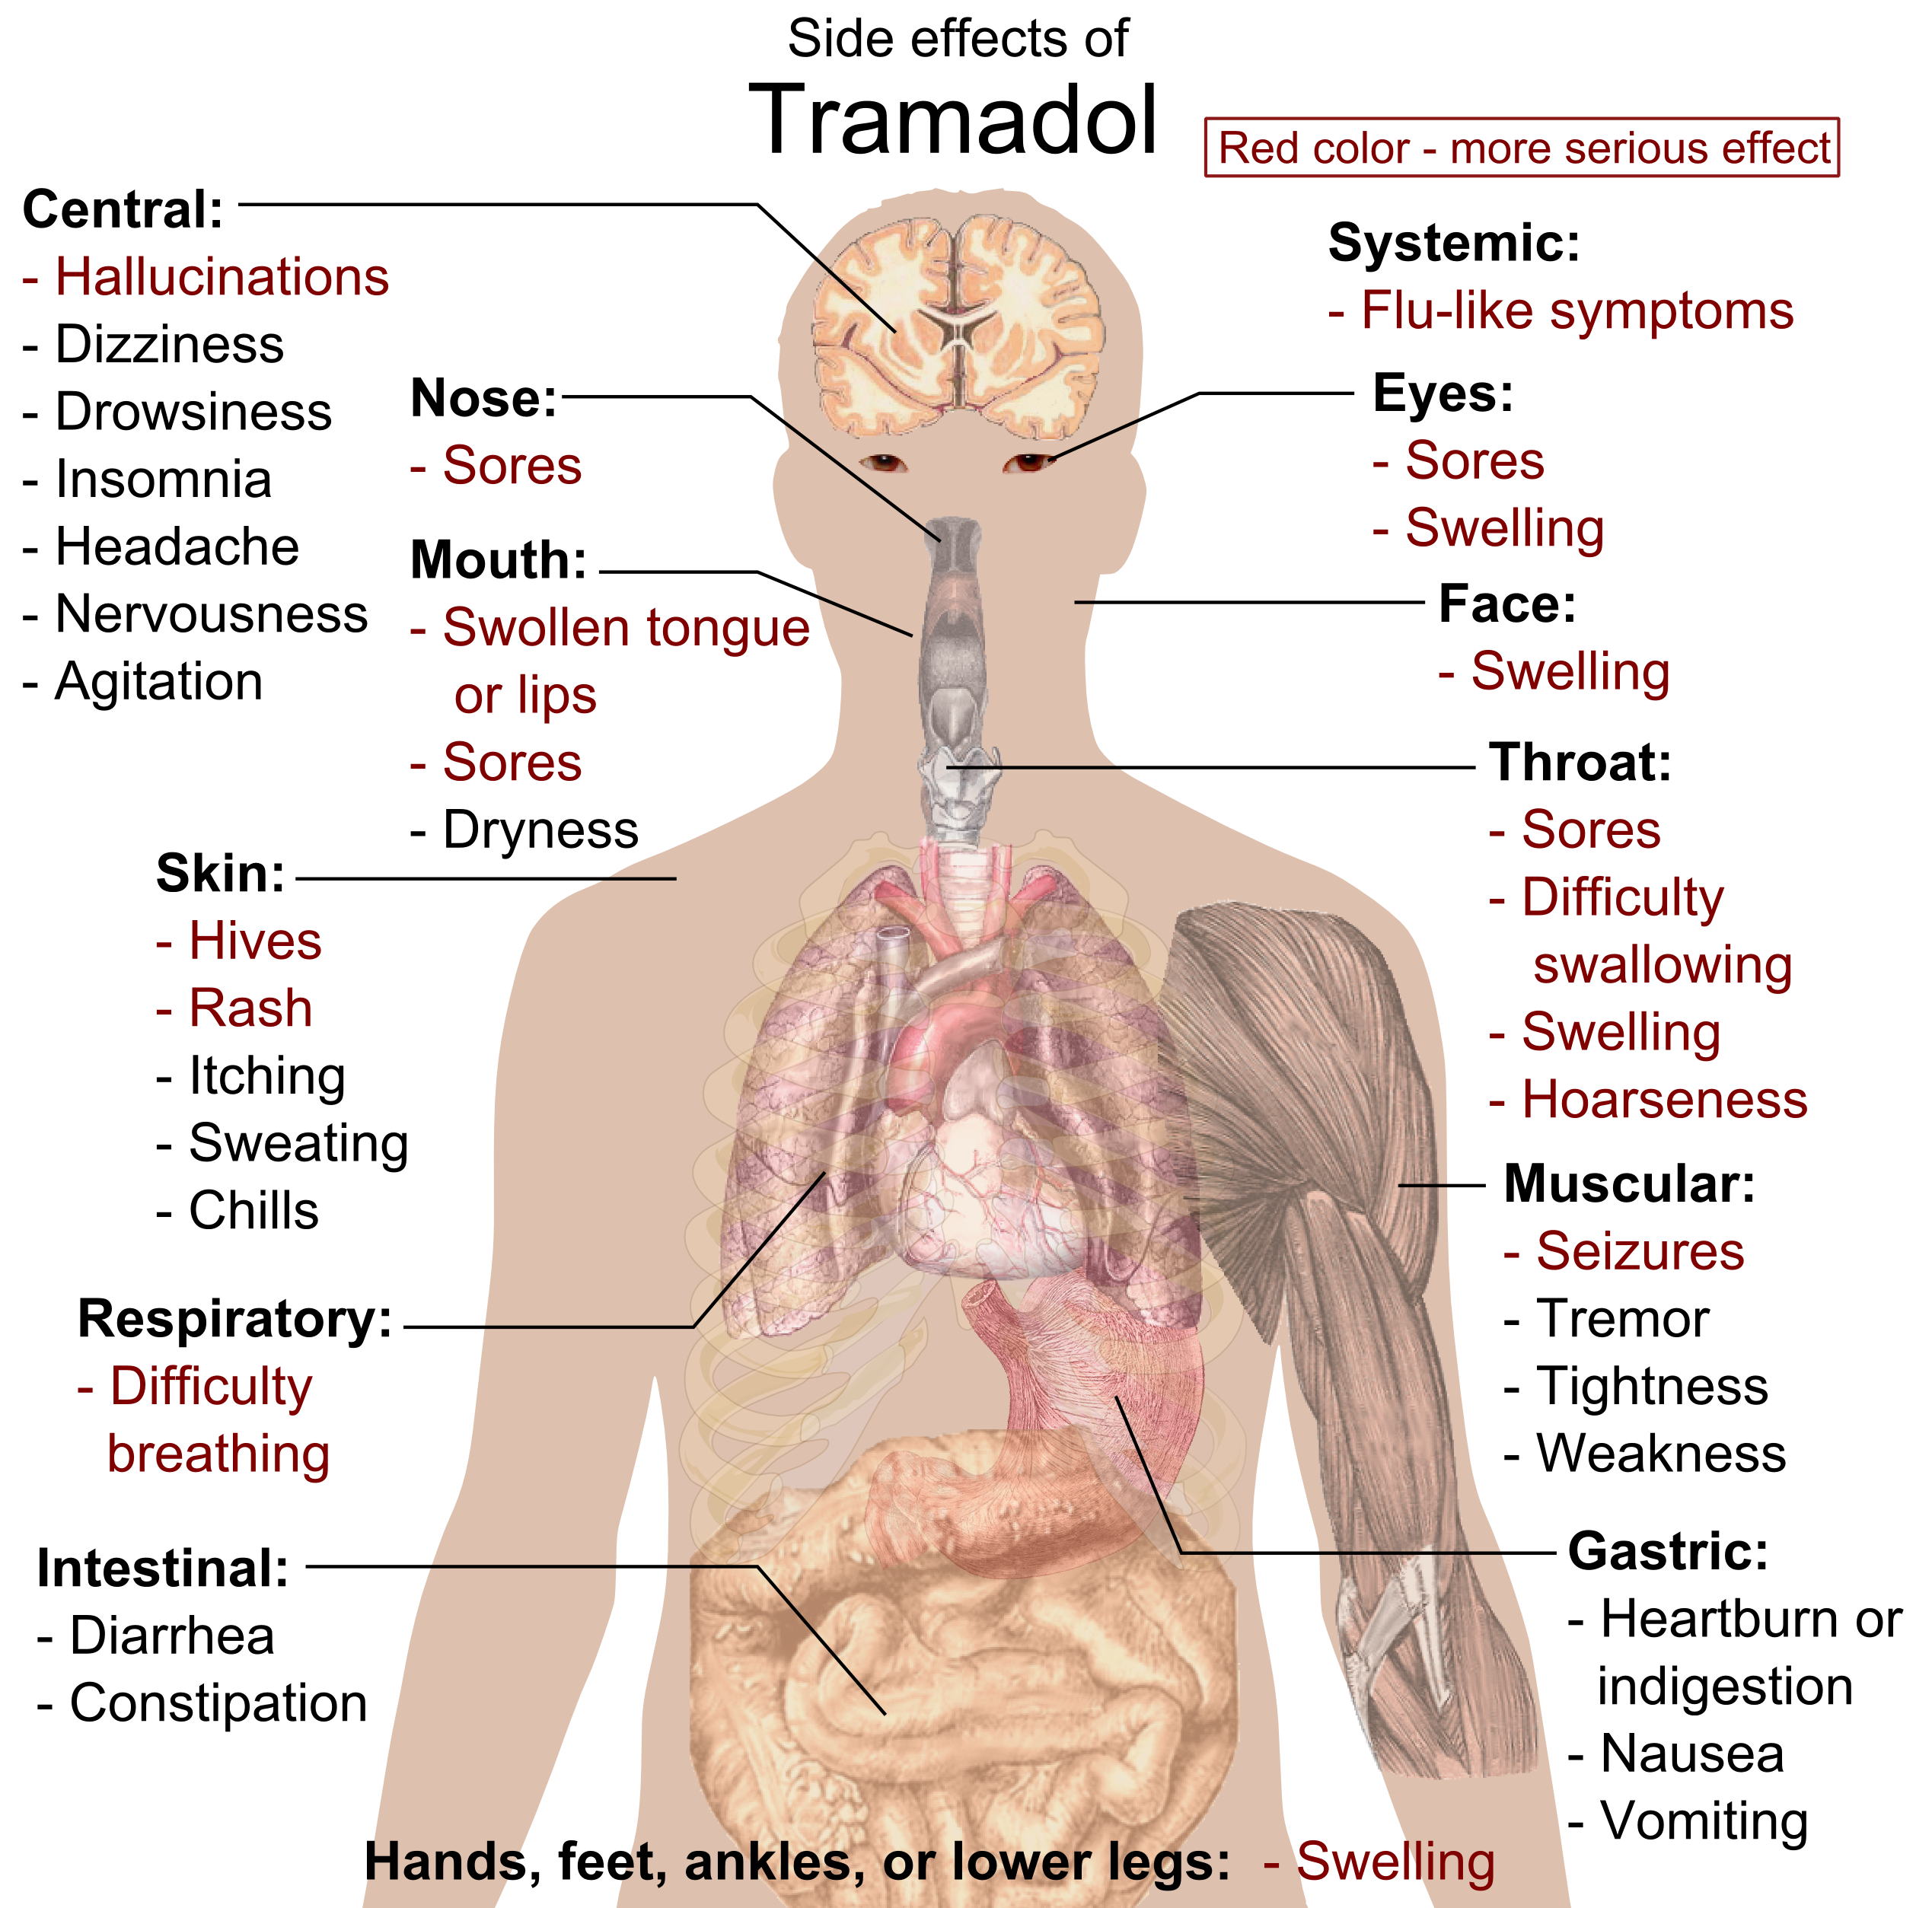 File:Side effects of Tramadol.png - Wikimedia Commons